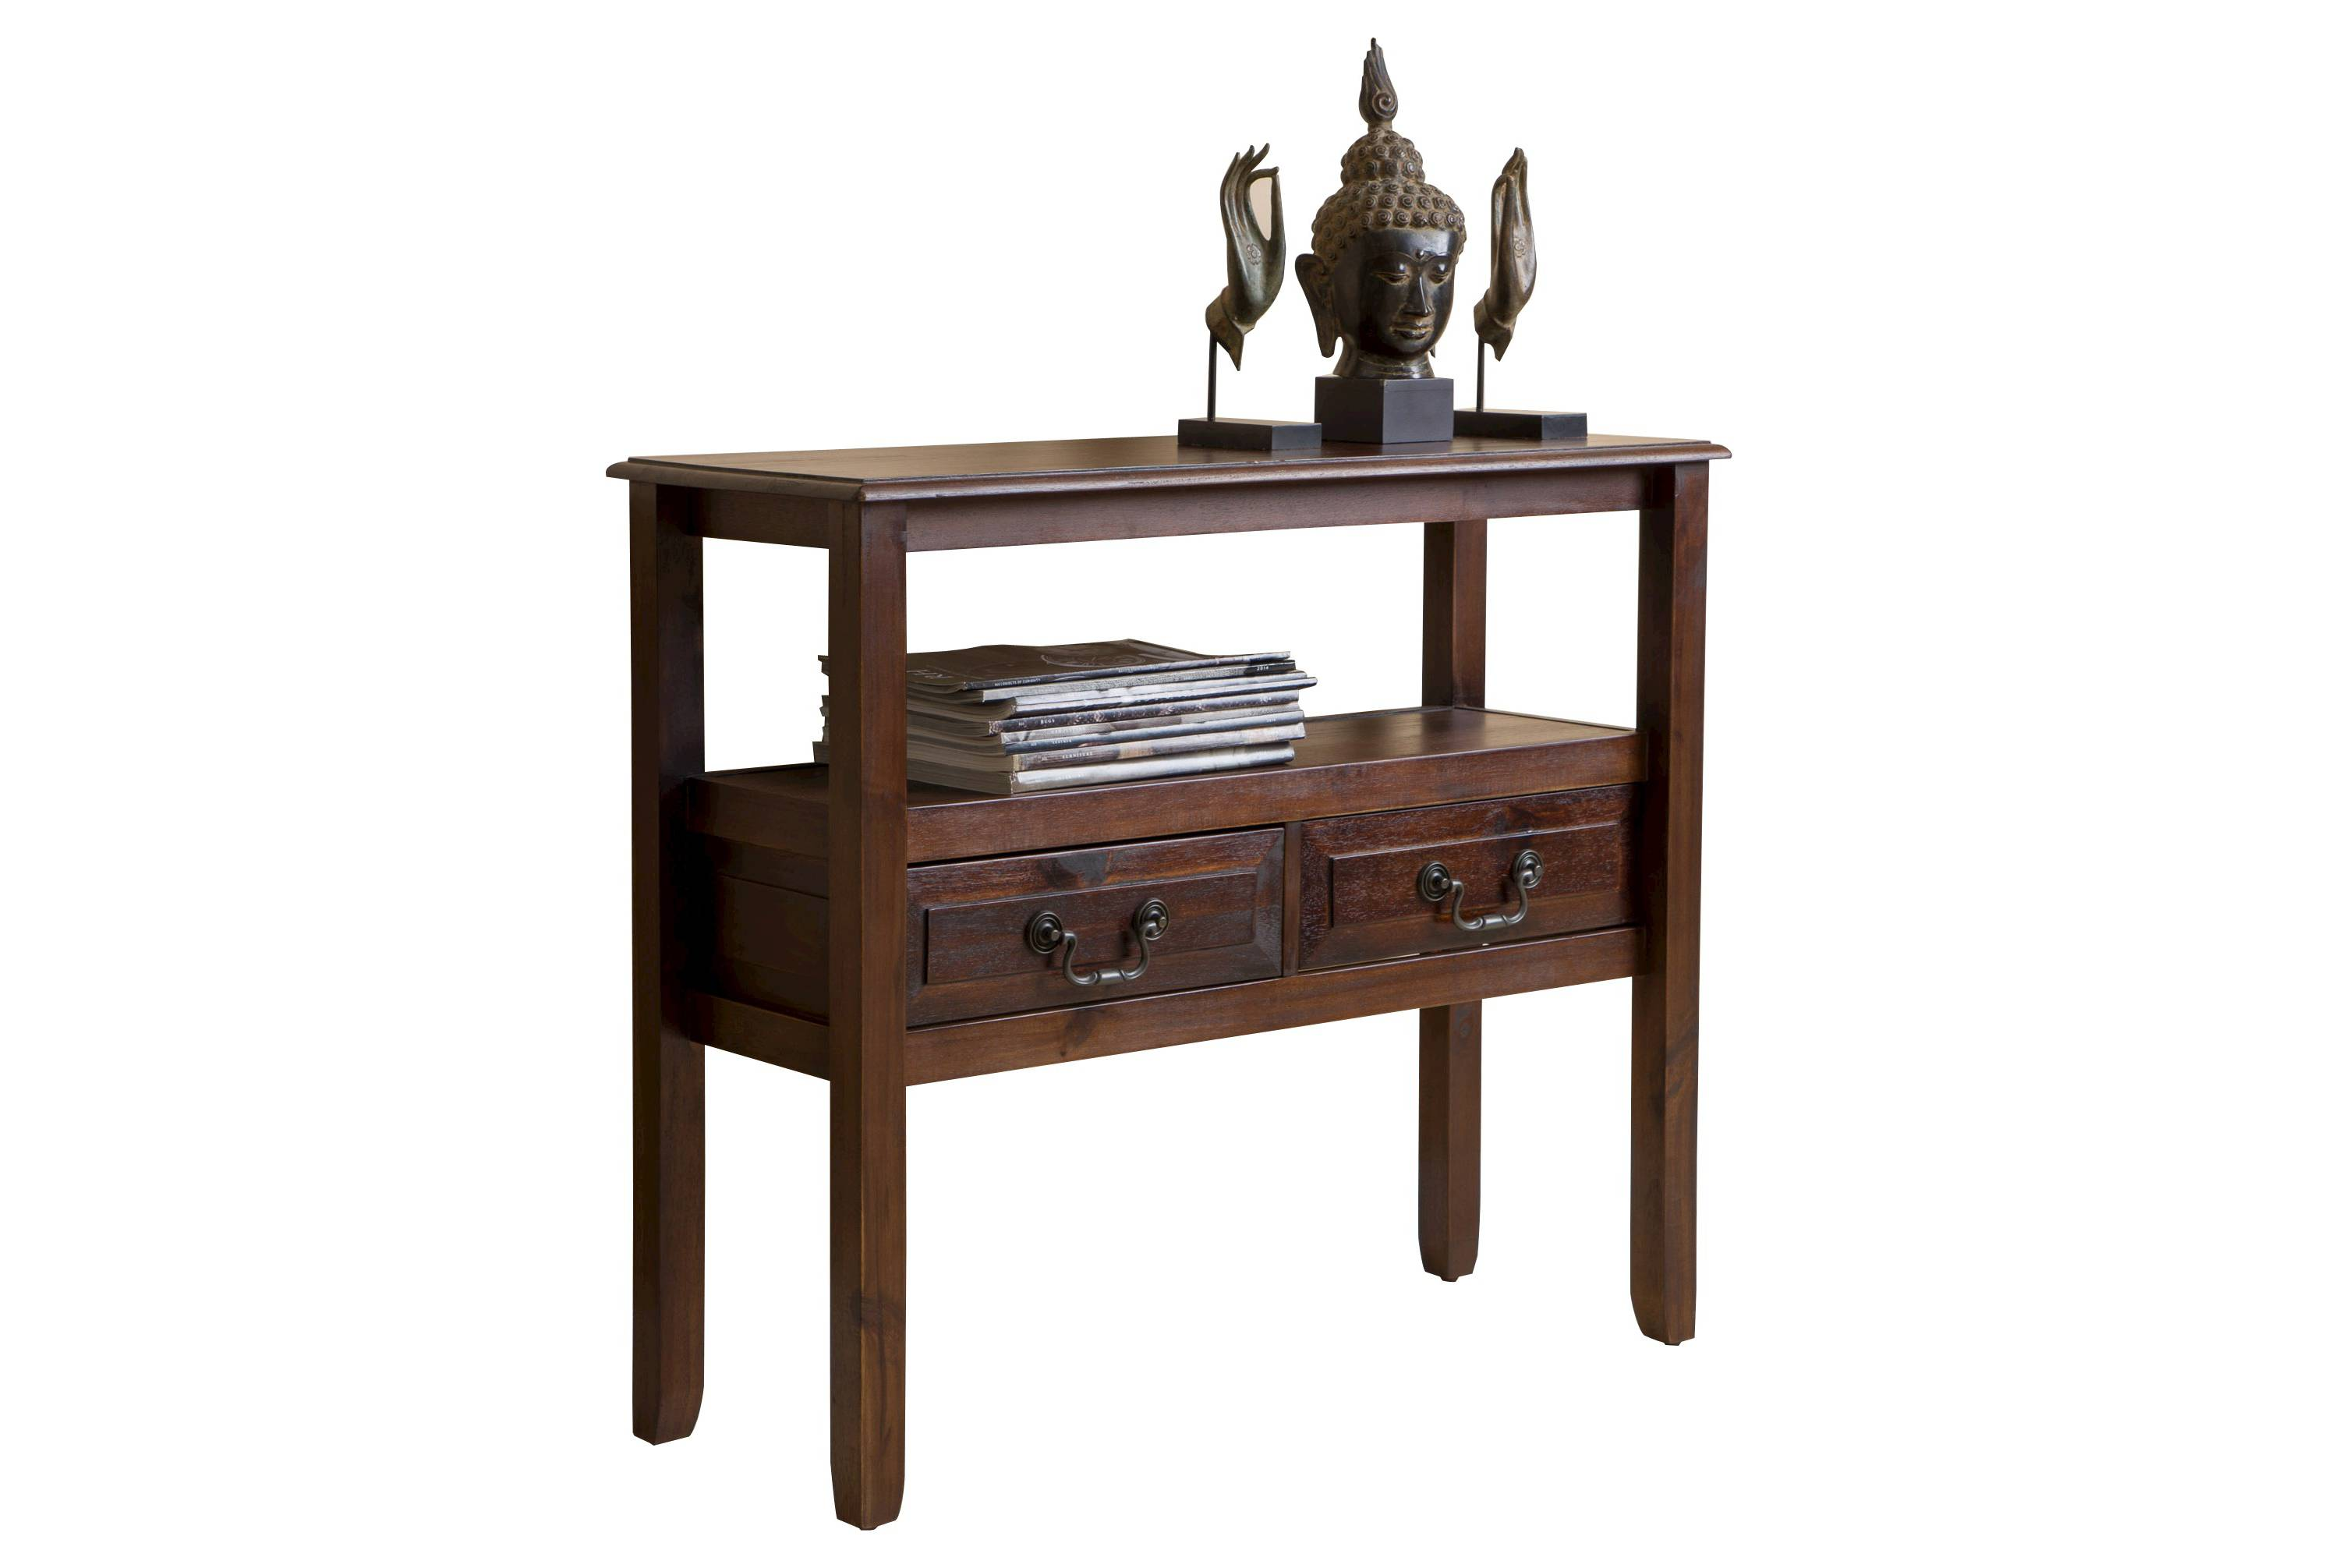 This entryway table is stunning and has two drawers to store things you need!